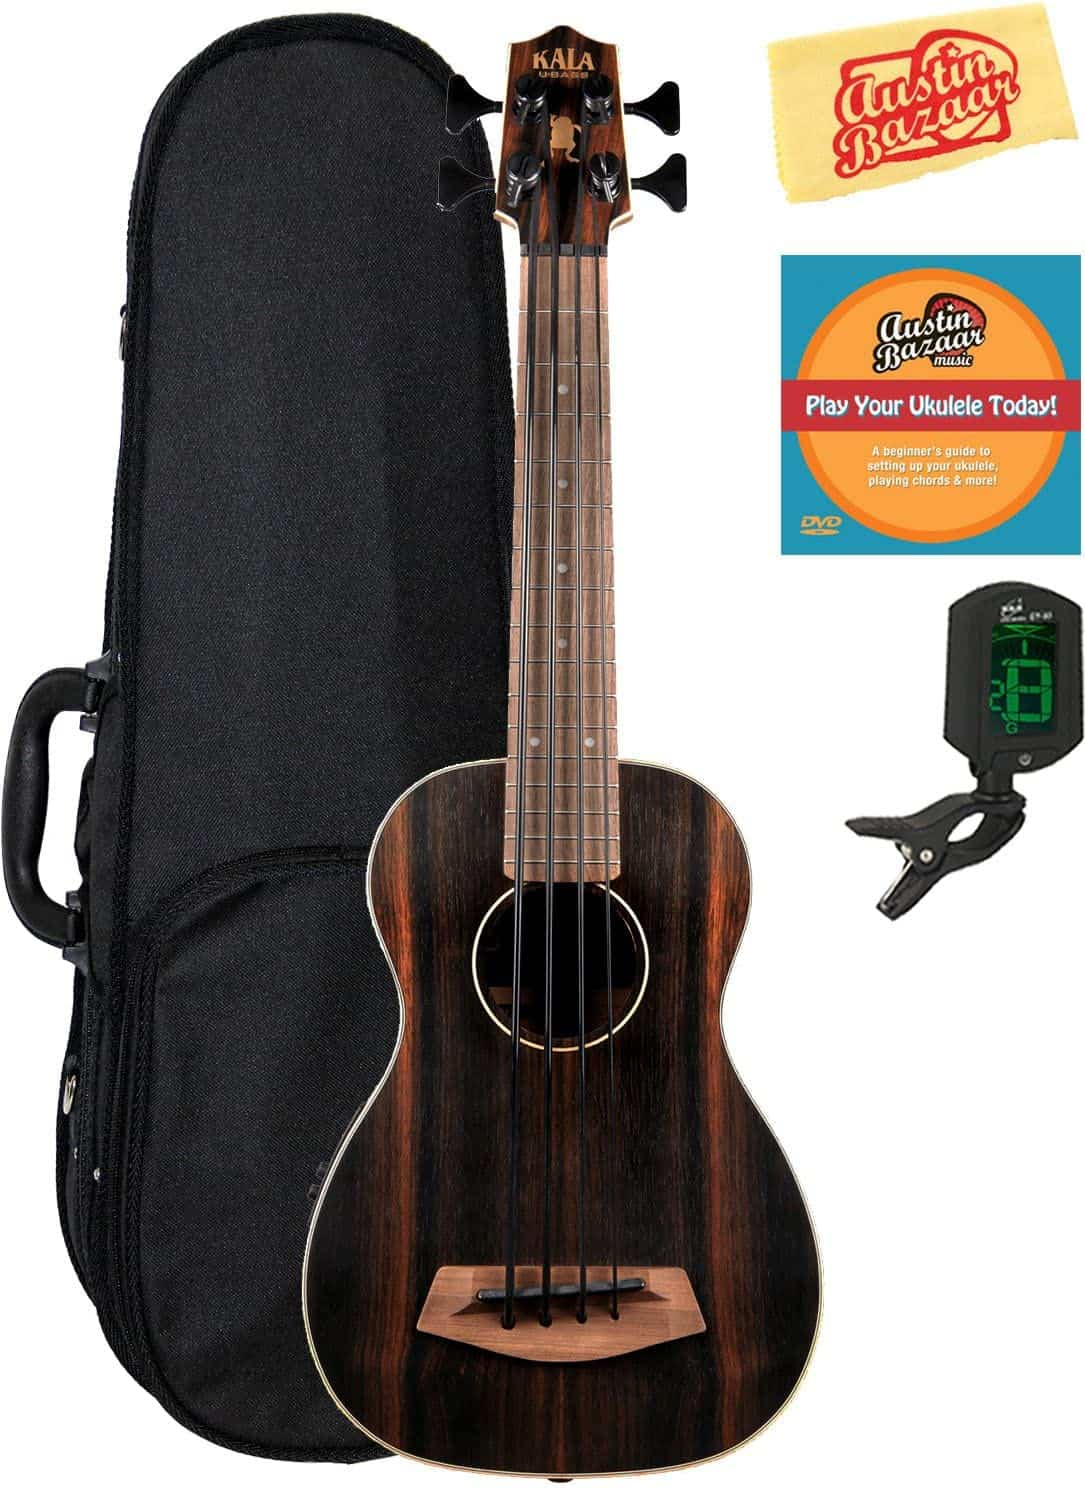 Kala U-Bass-EBY-FS Striped Ebony Fretted Acoustic-Electric U-Bass Ukulele Bundle with Hard Case, Tuner, Austin Bazaar Instructional DVD, and Polishing Cloth.